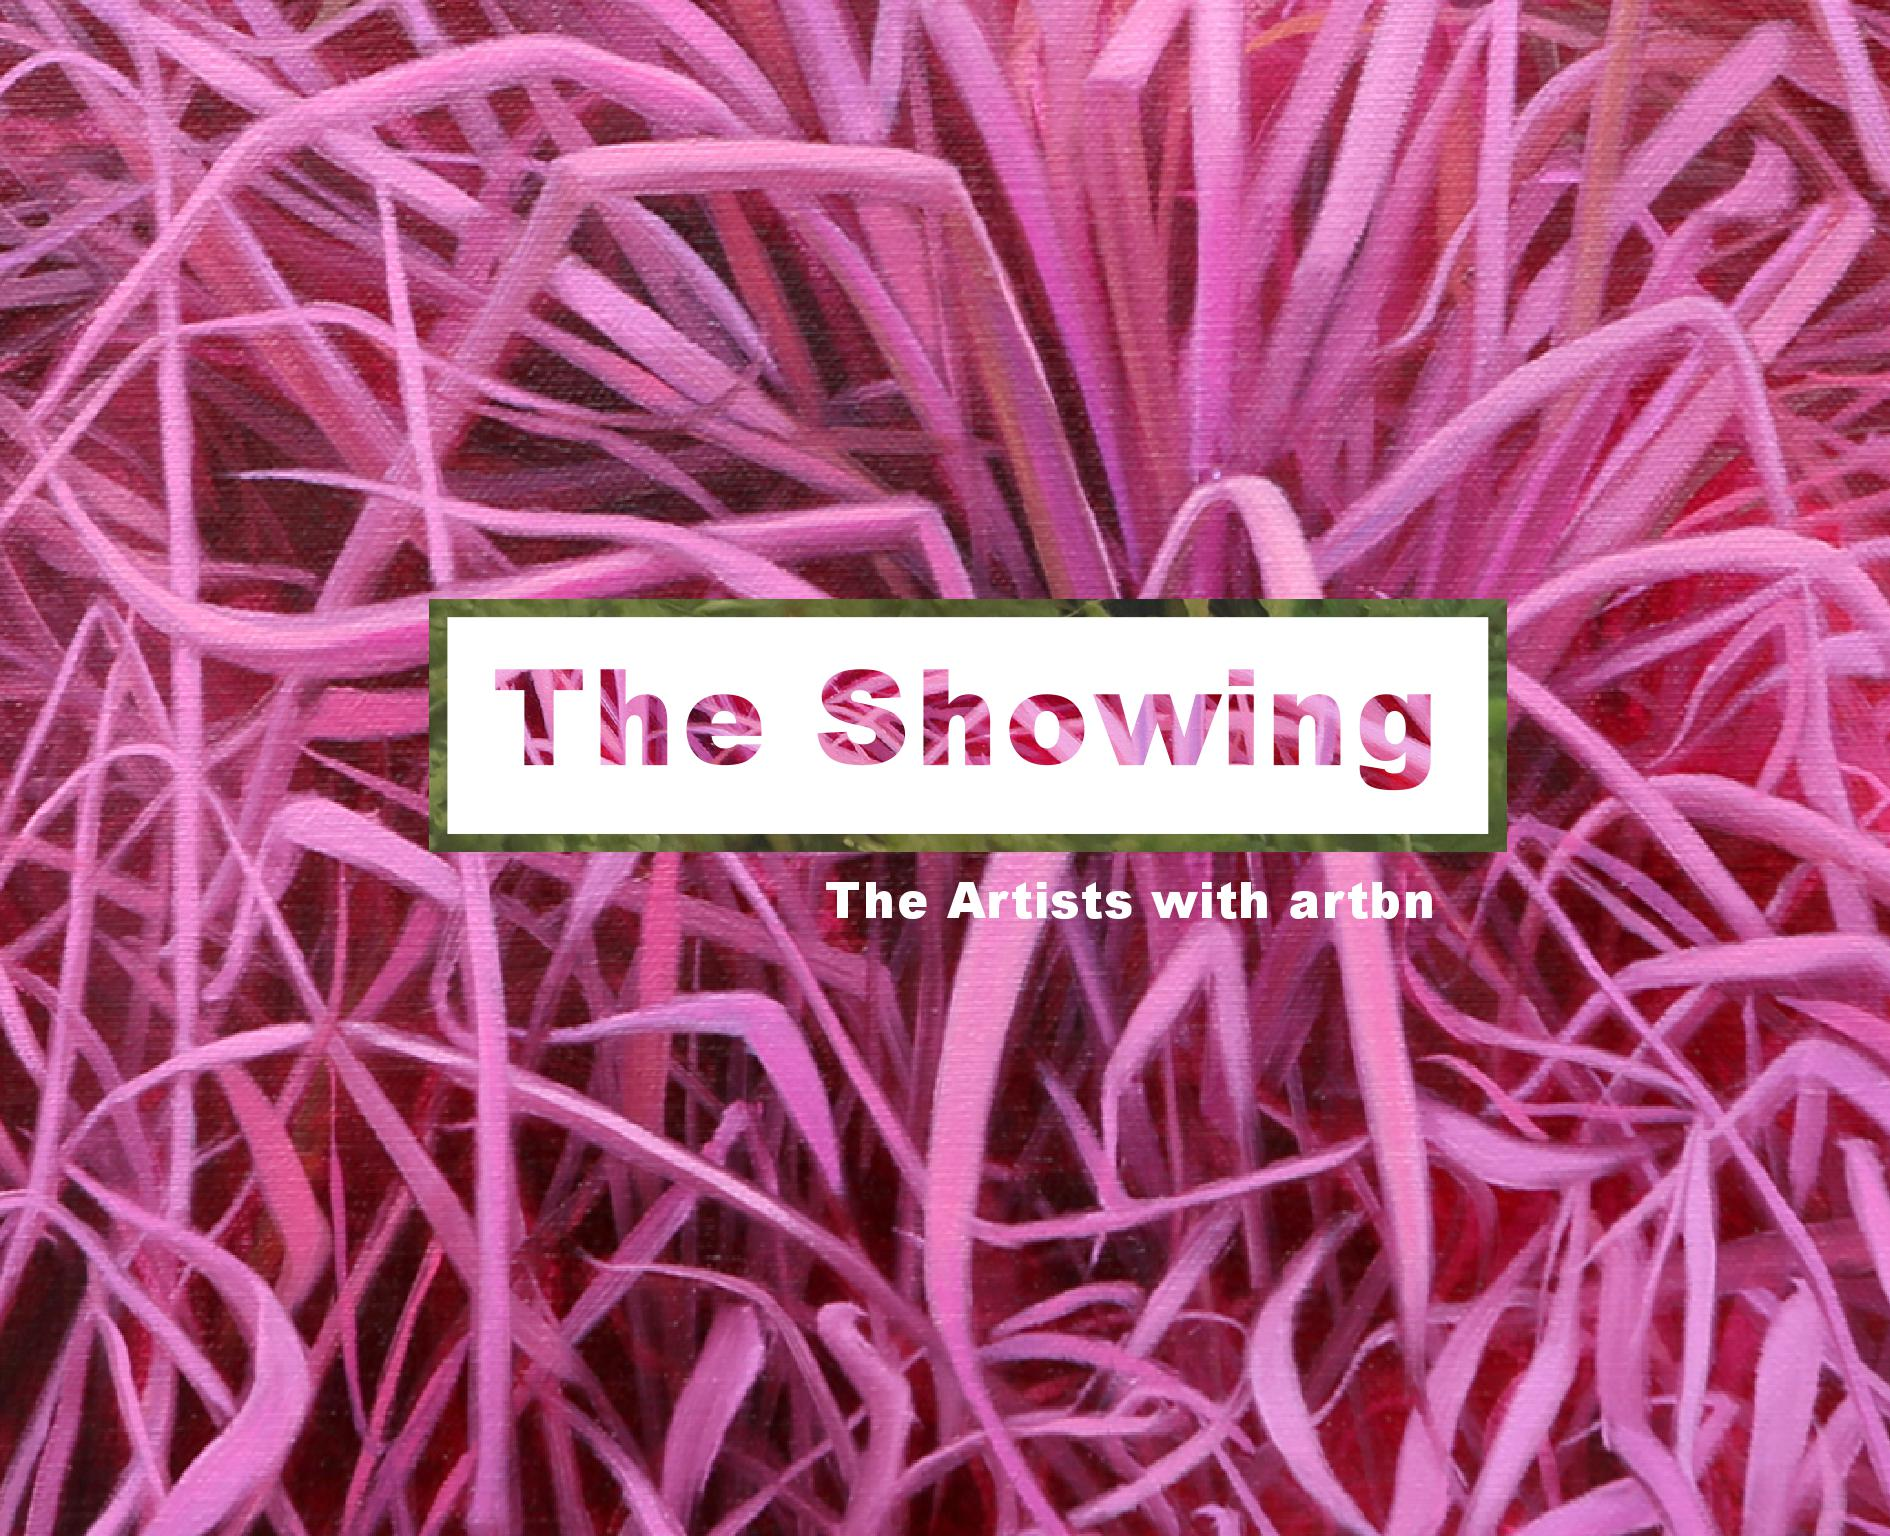 The Showing